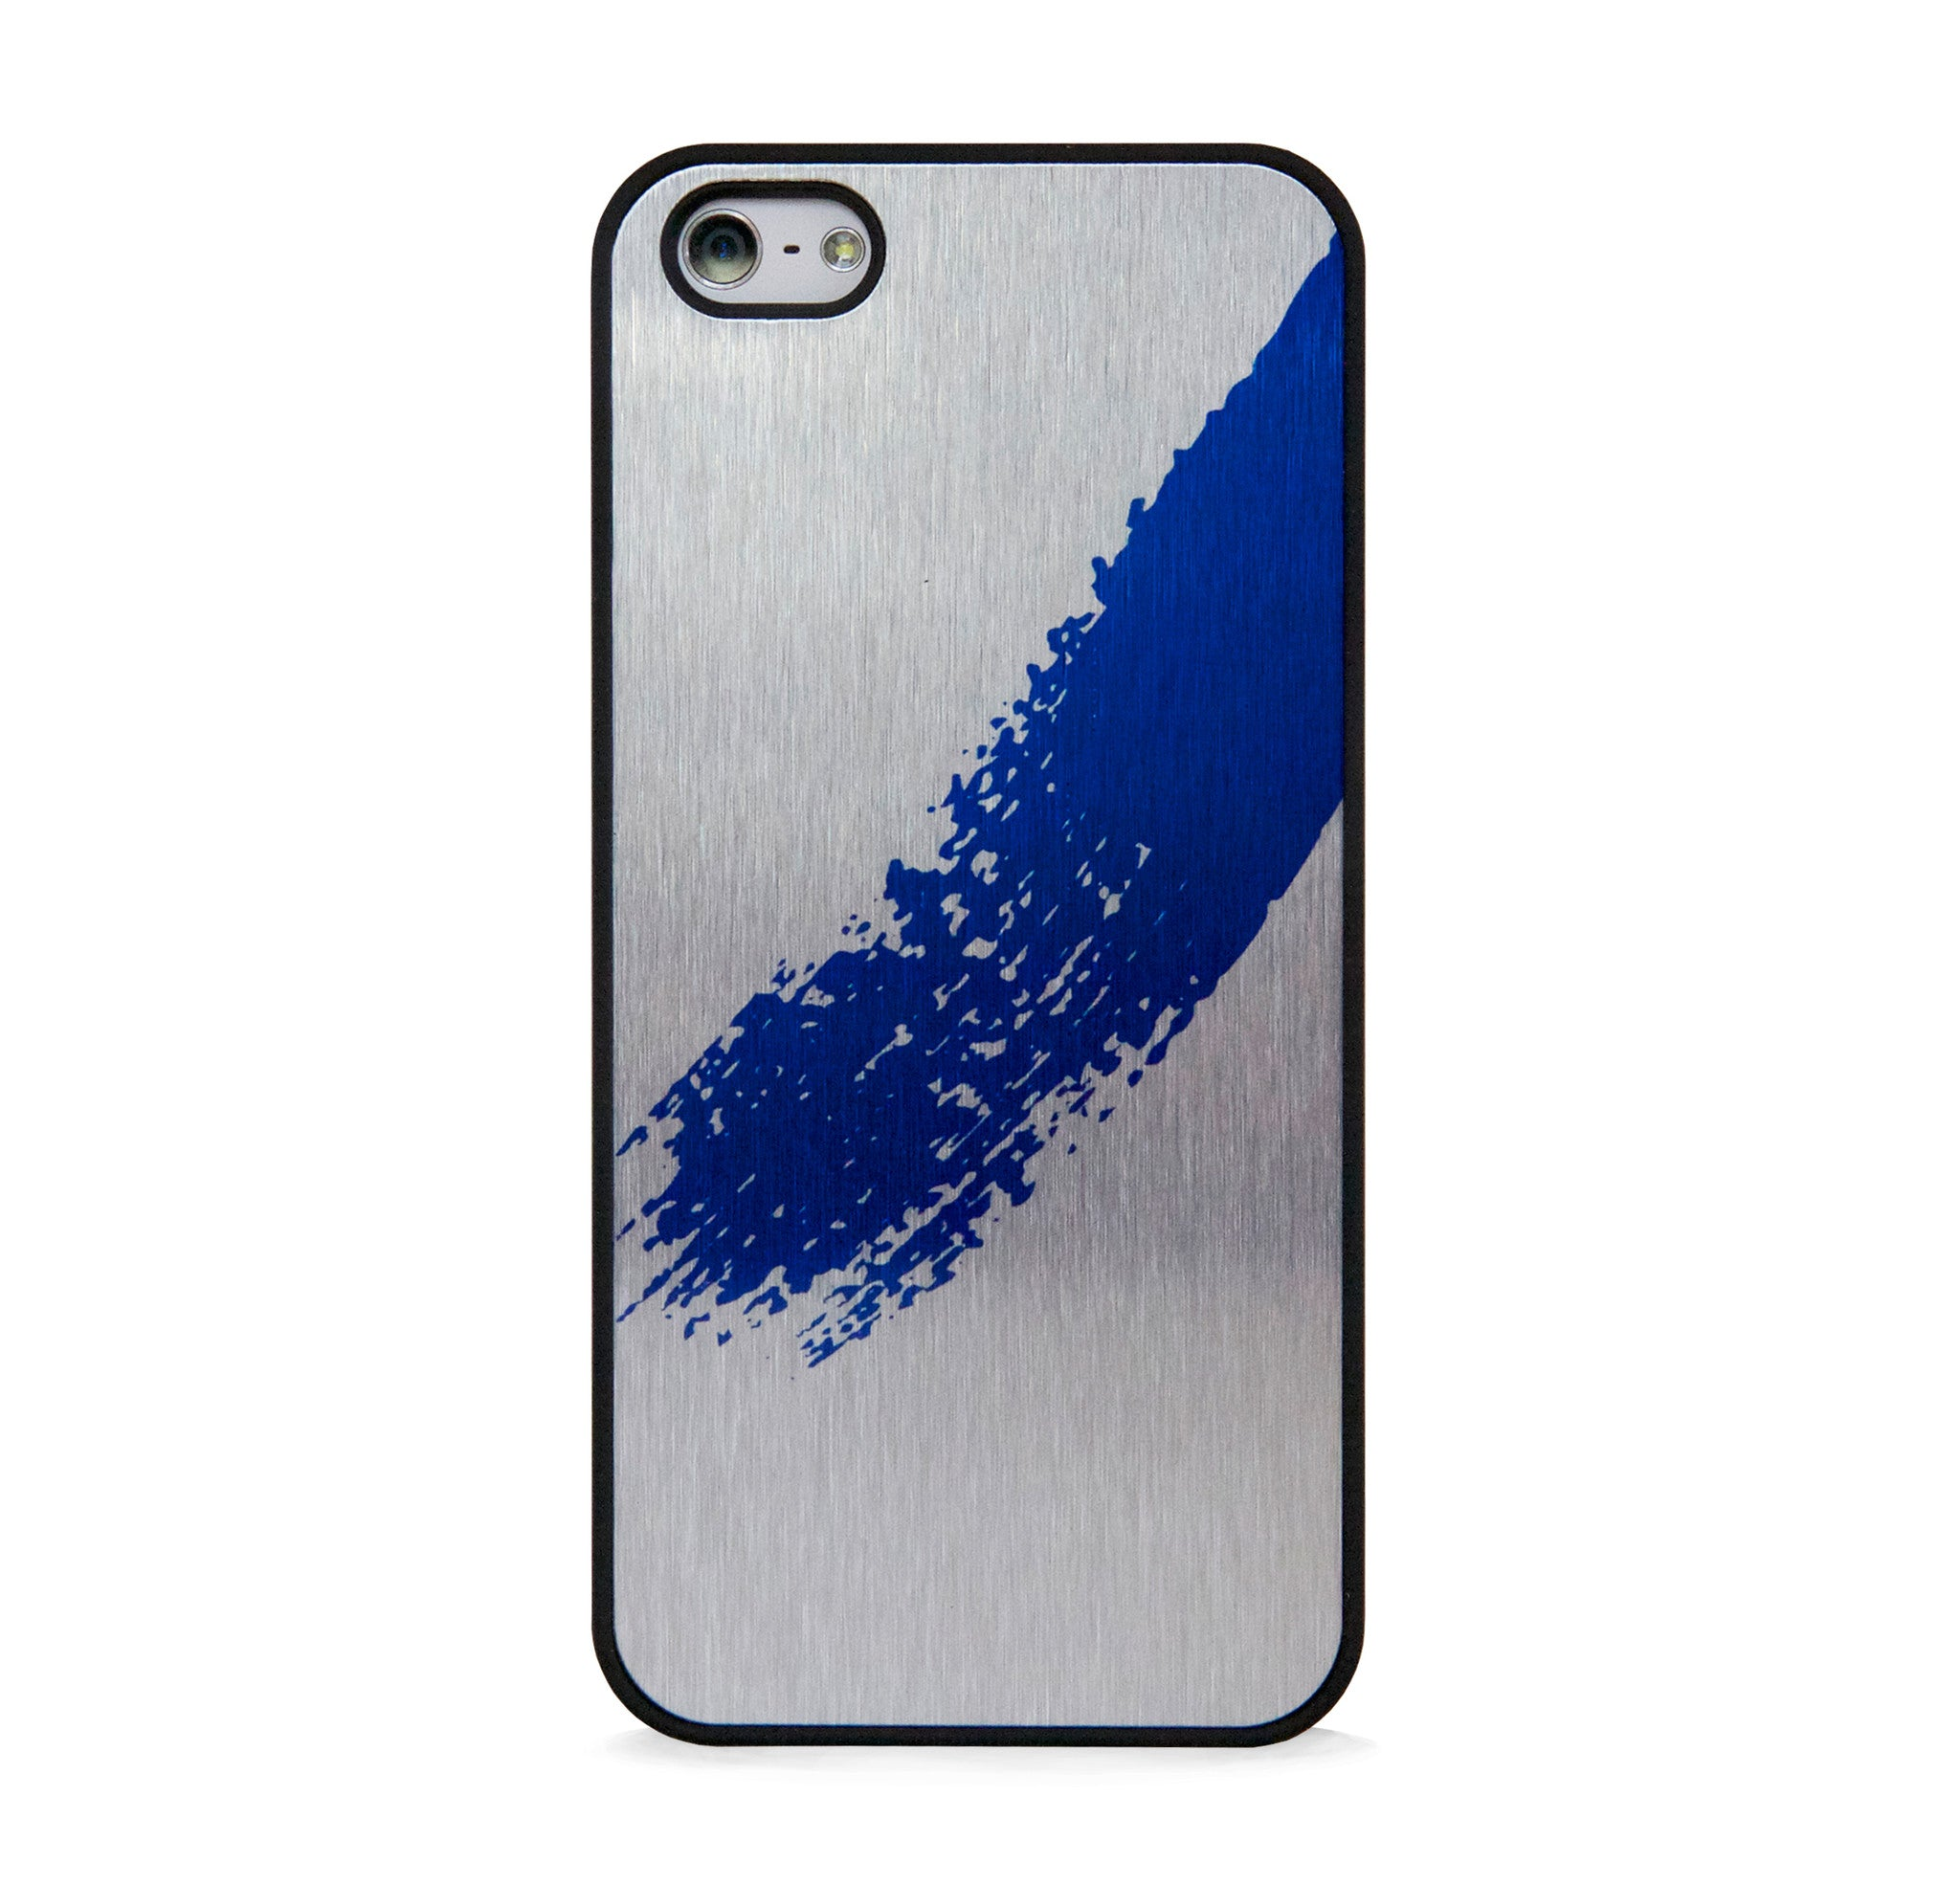 STYLISH CALLIGRAPHY BLUE ON SILVER FOR IPHONE 5/5S